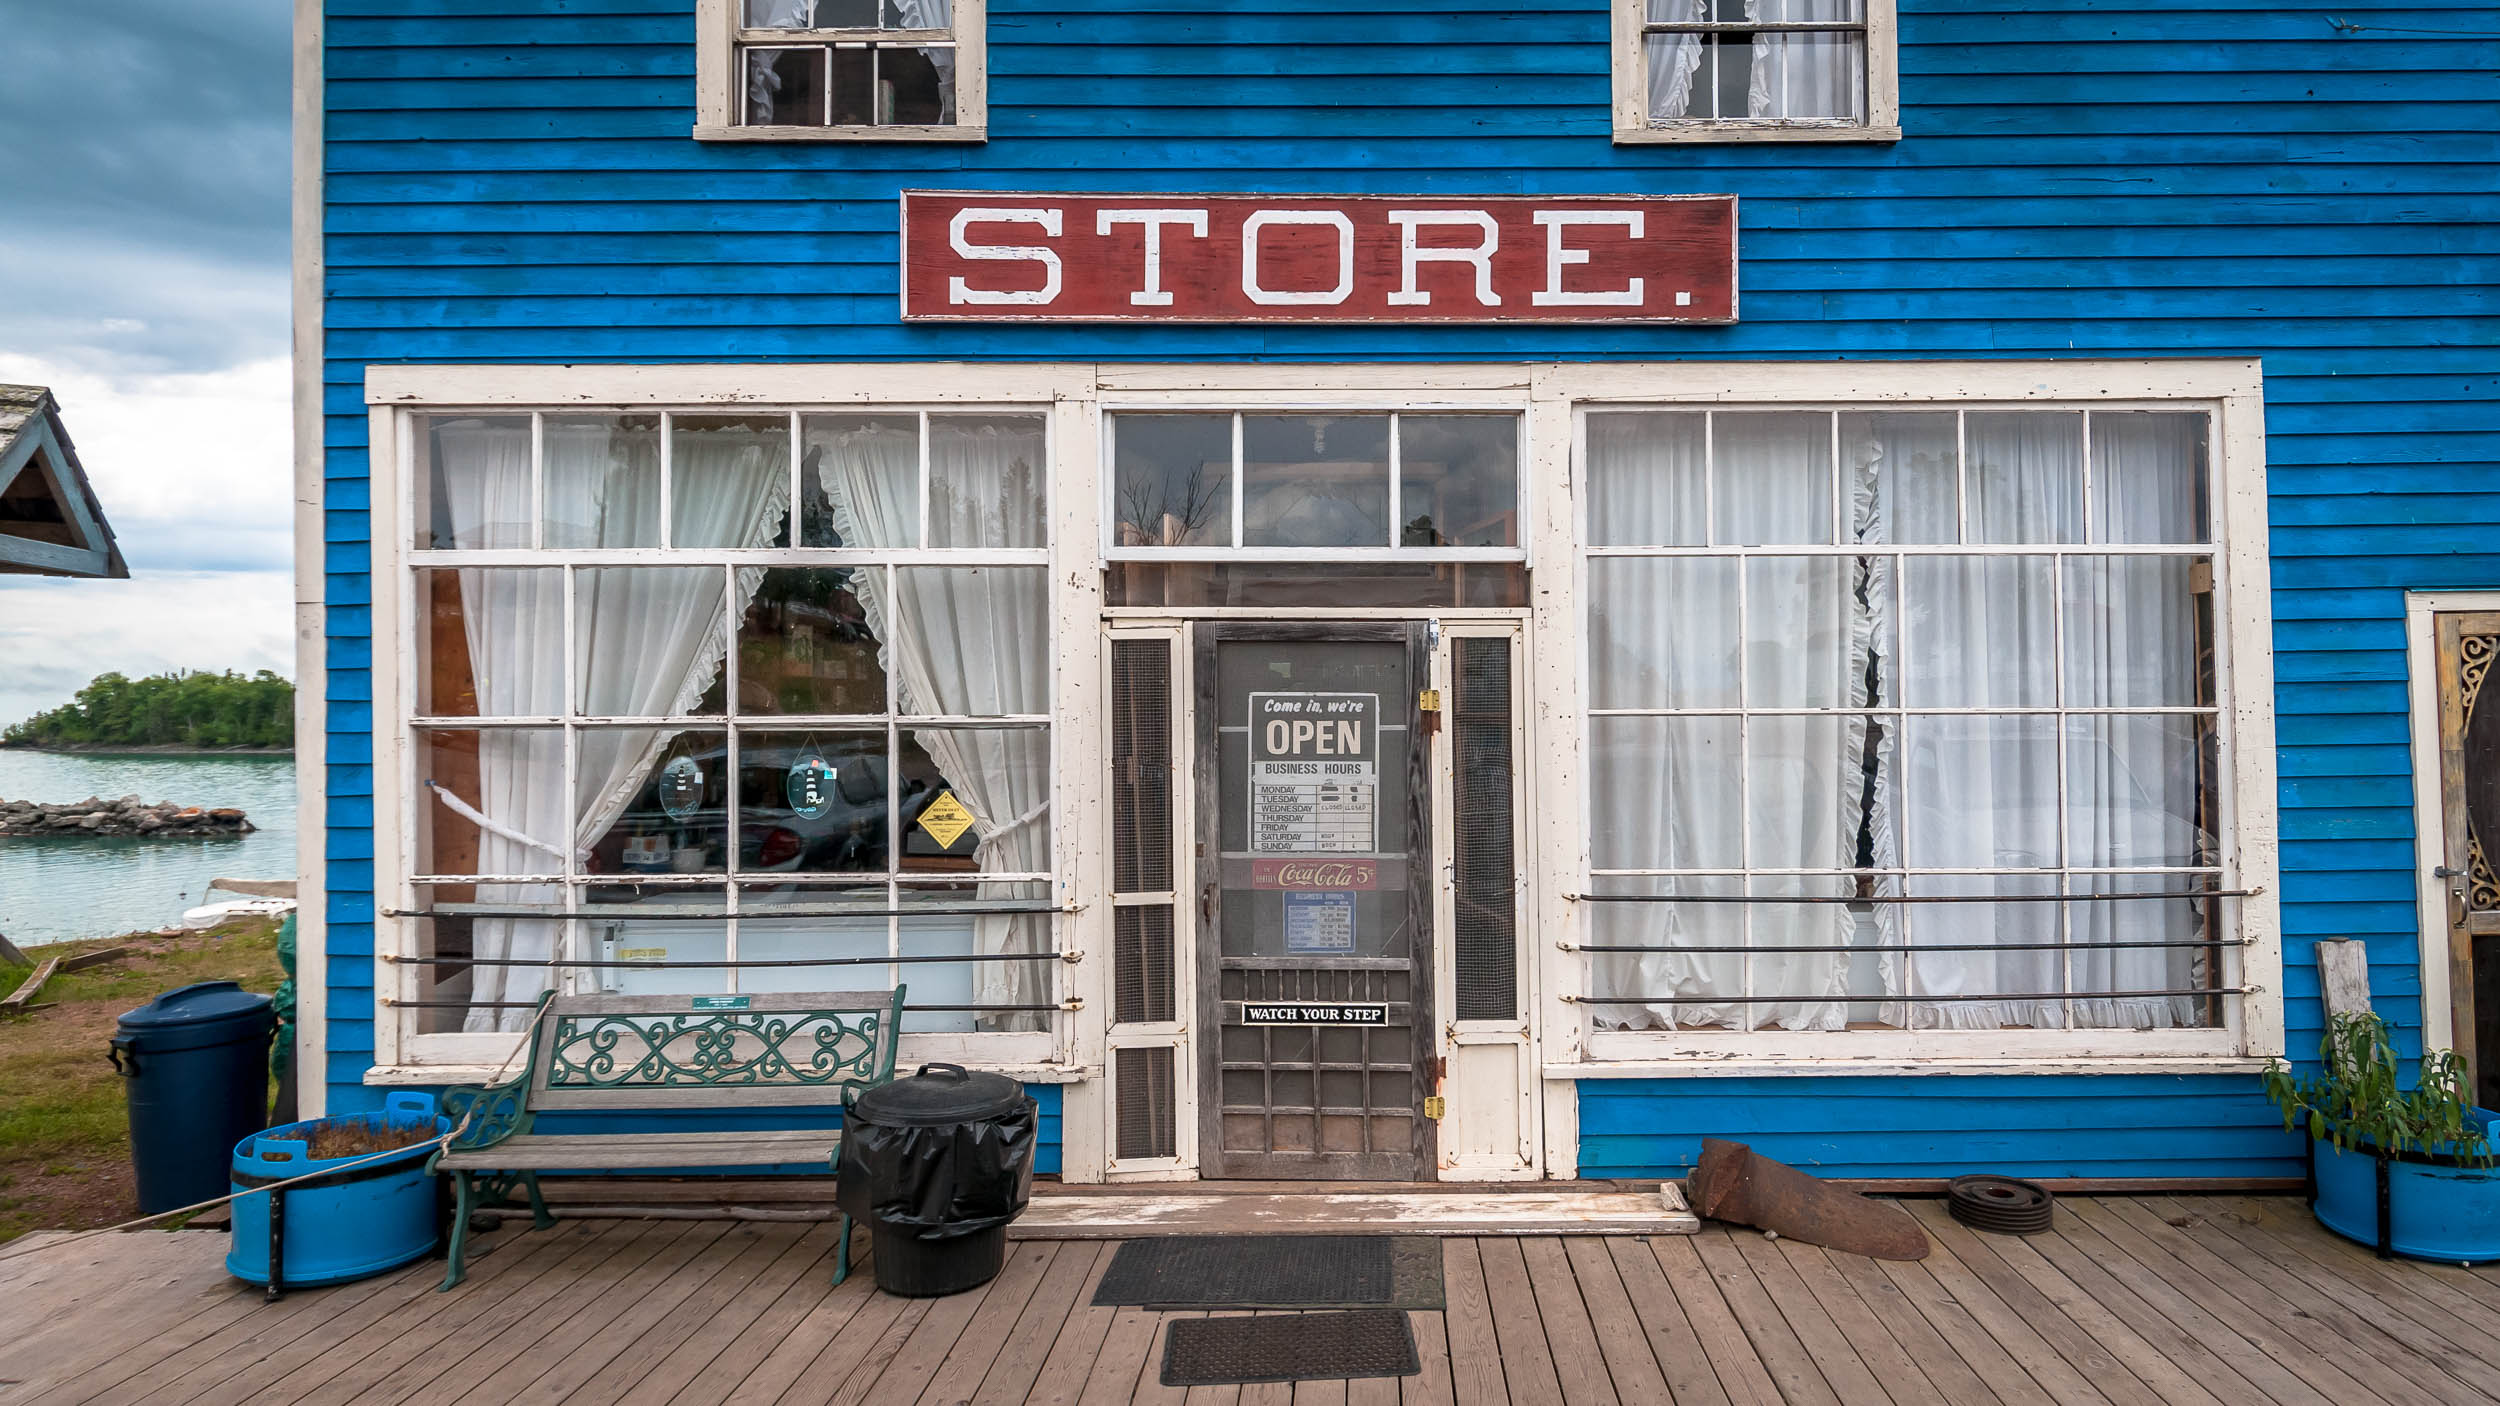 The Store, George Siede